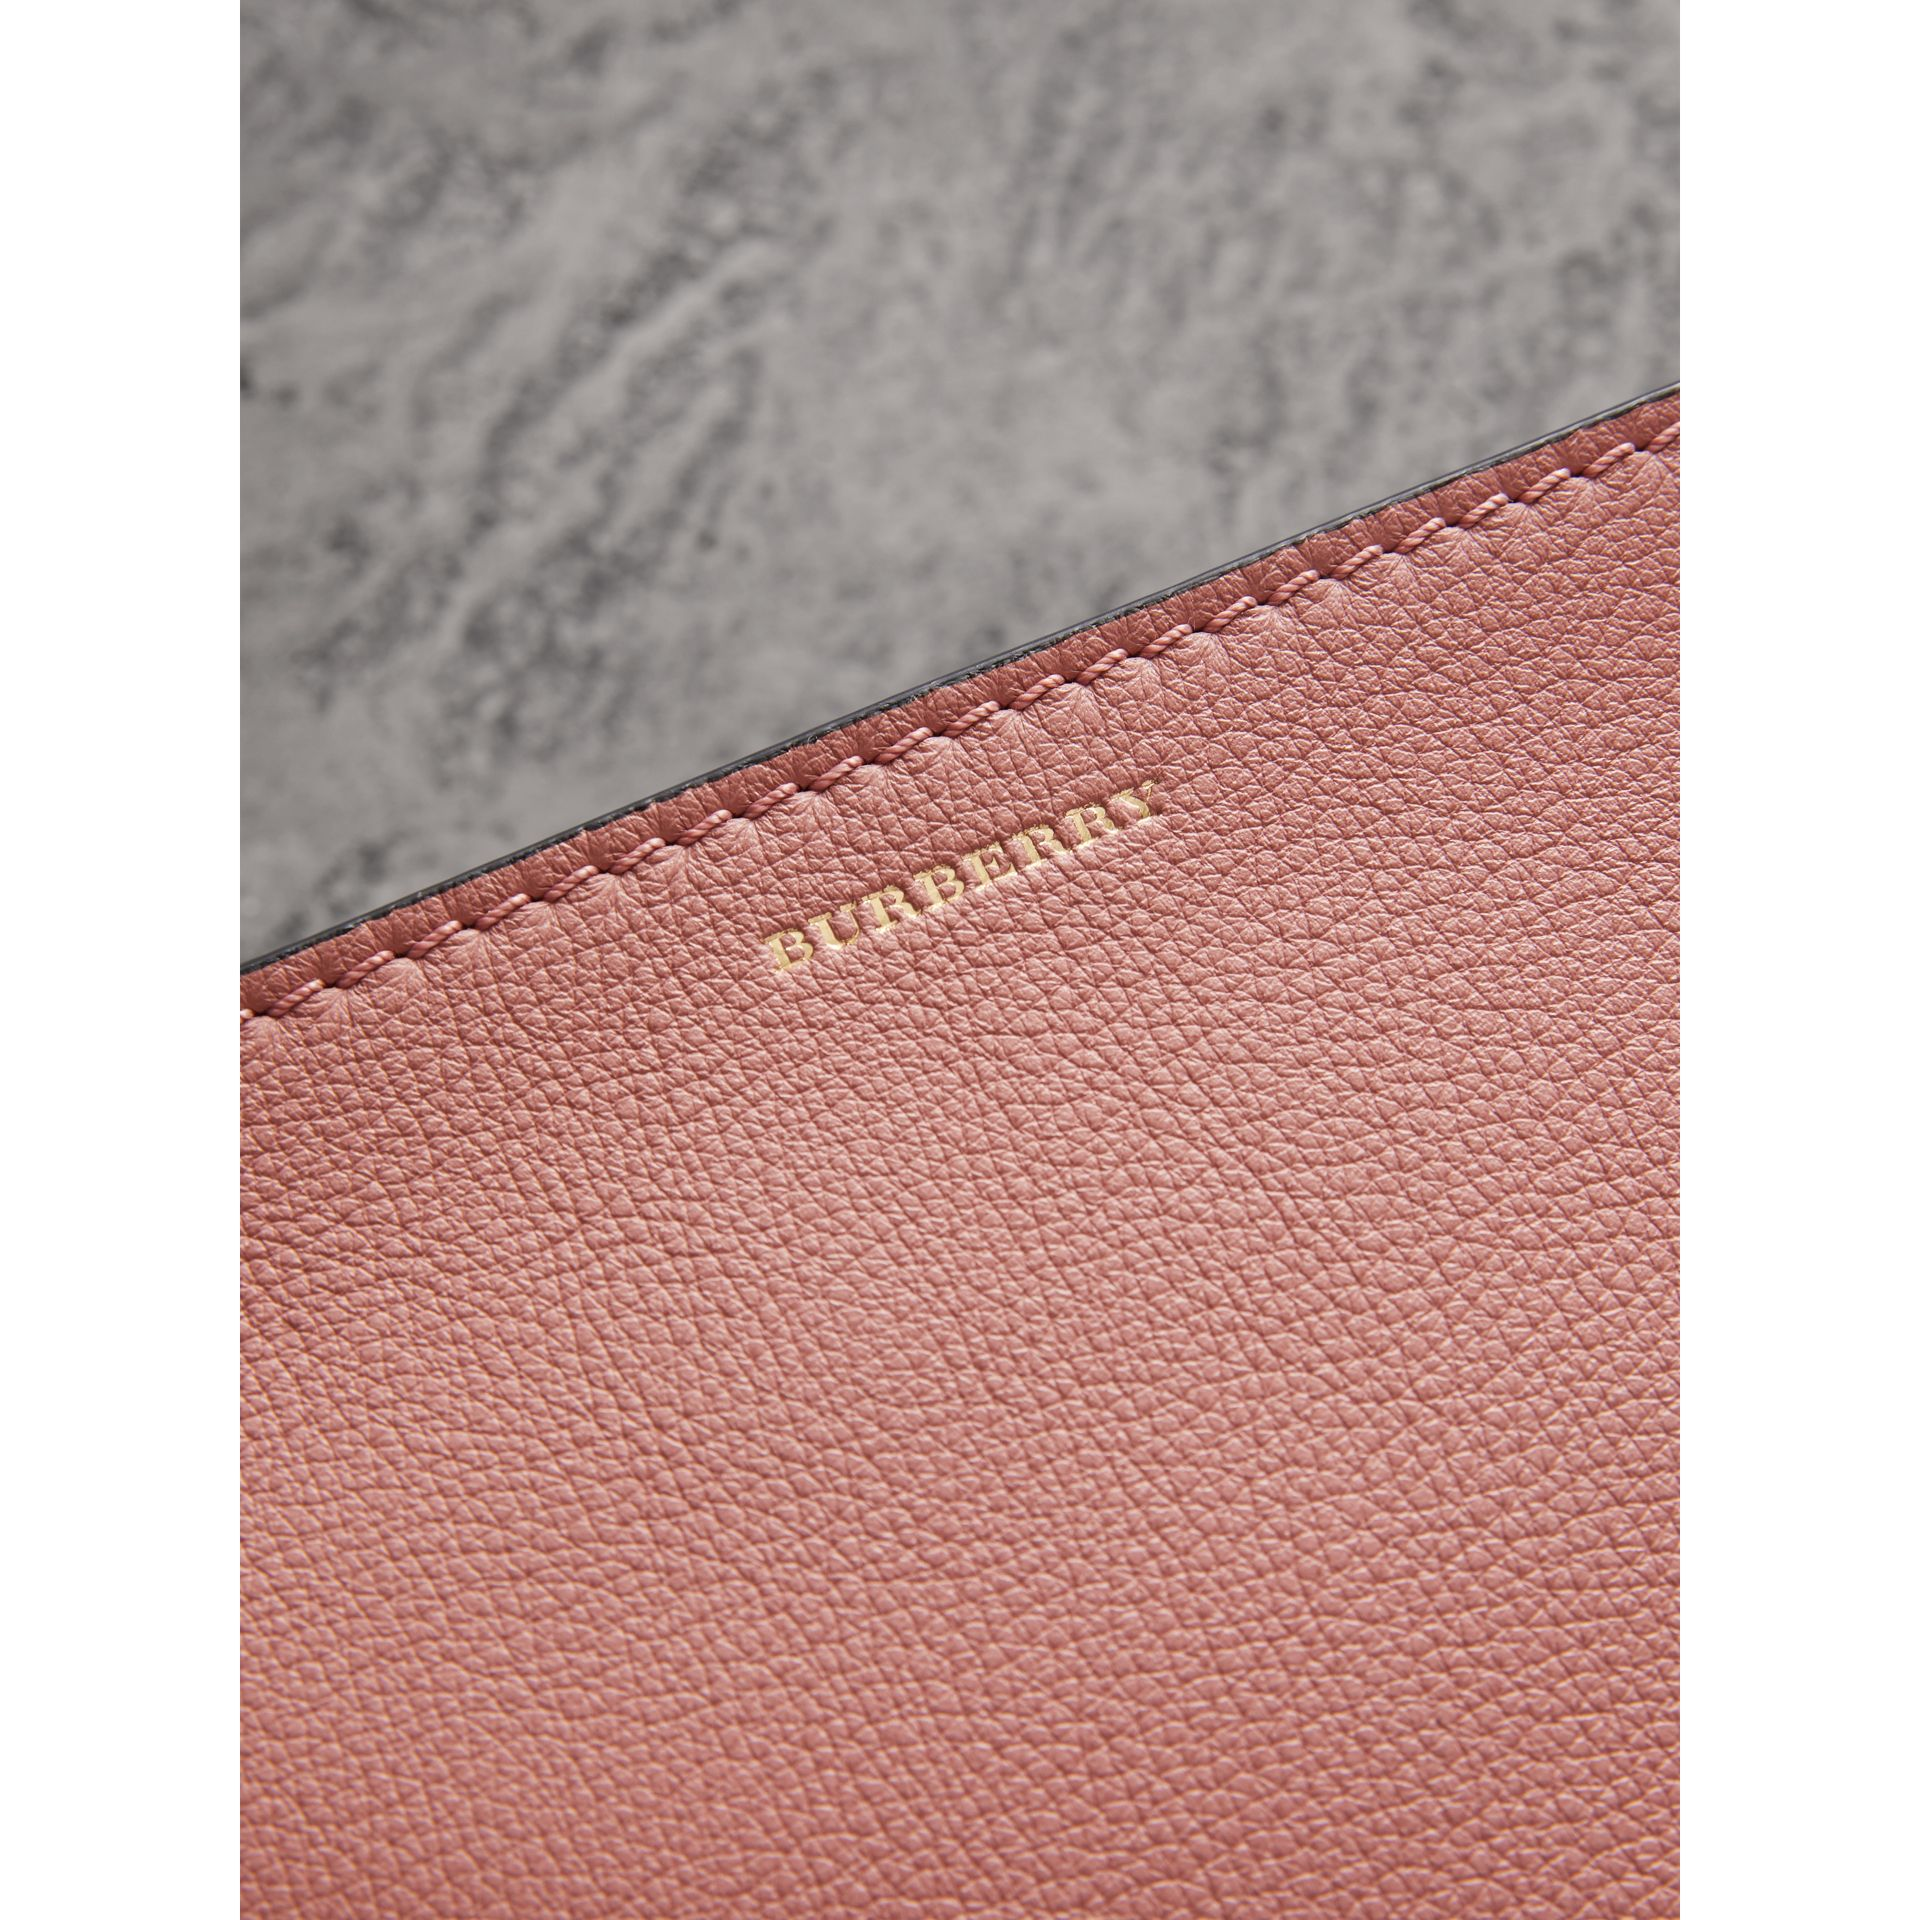 Medium Tri-tone Leather Clutch in Dusty Rose/limestone | Burberry United Kingdom - gallery image 1